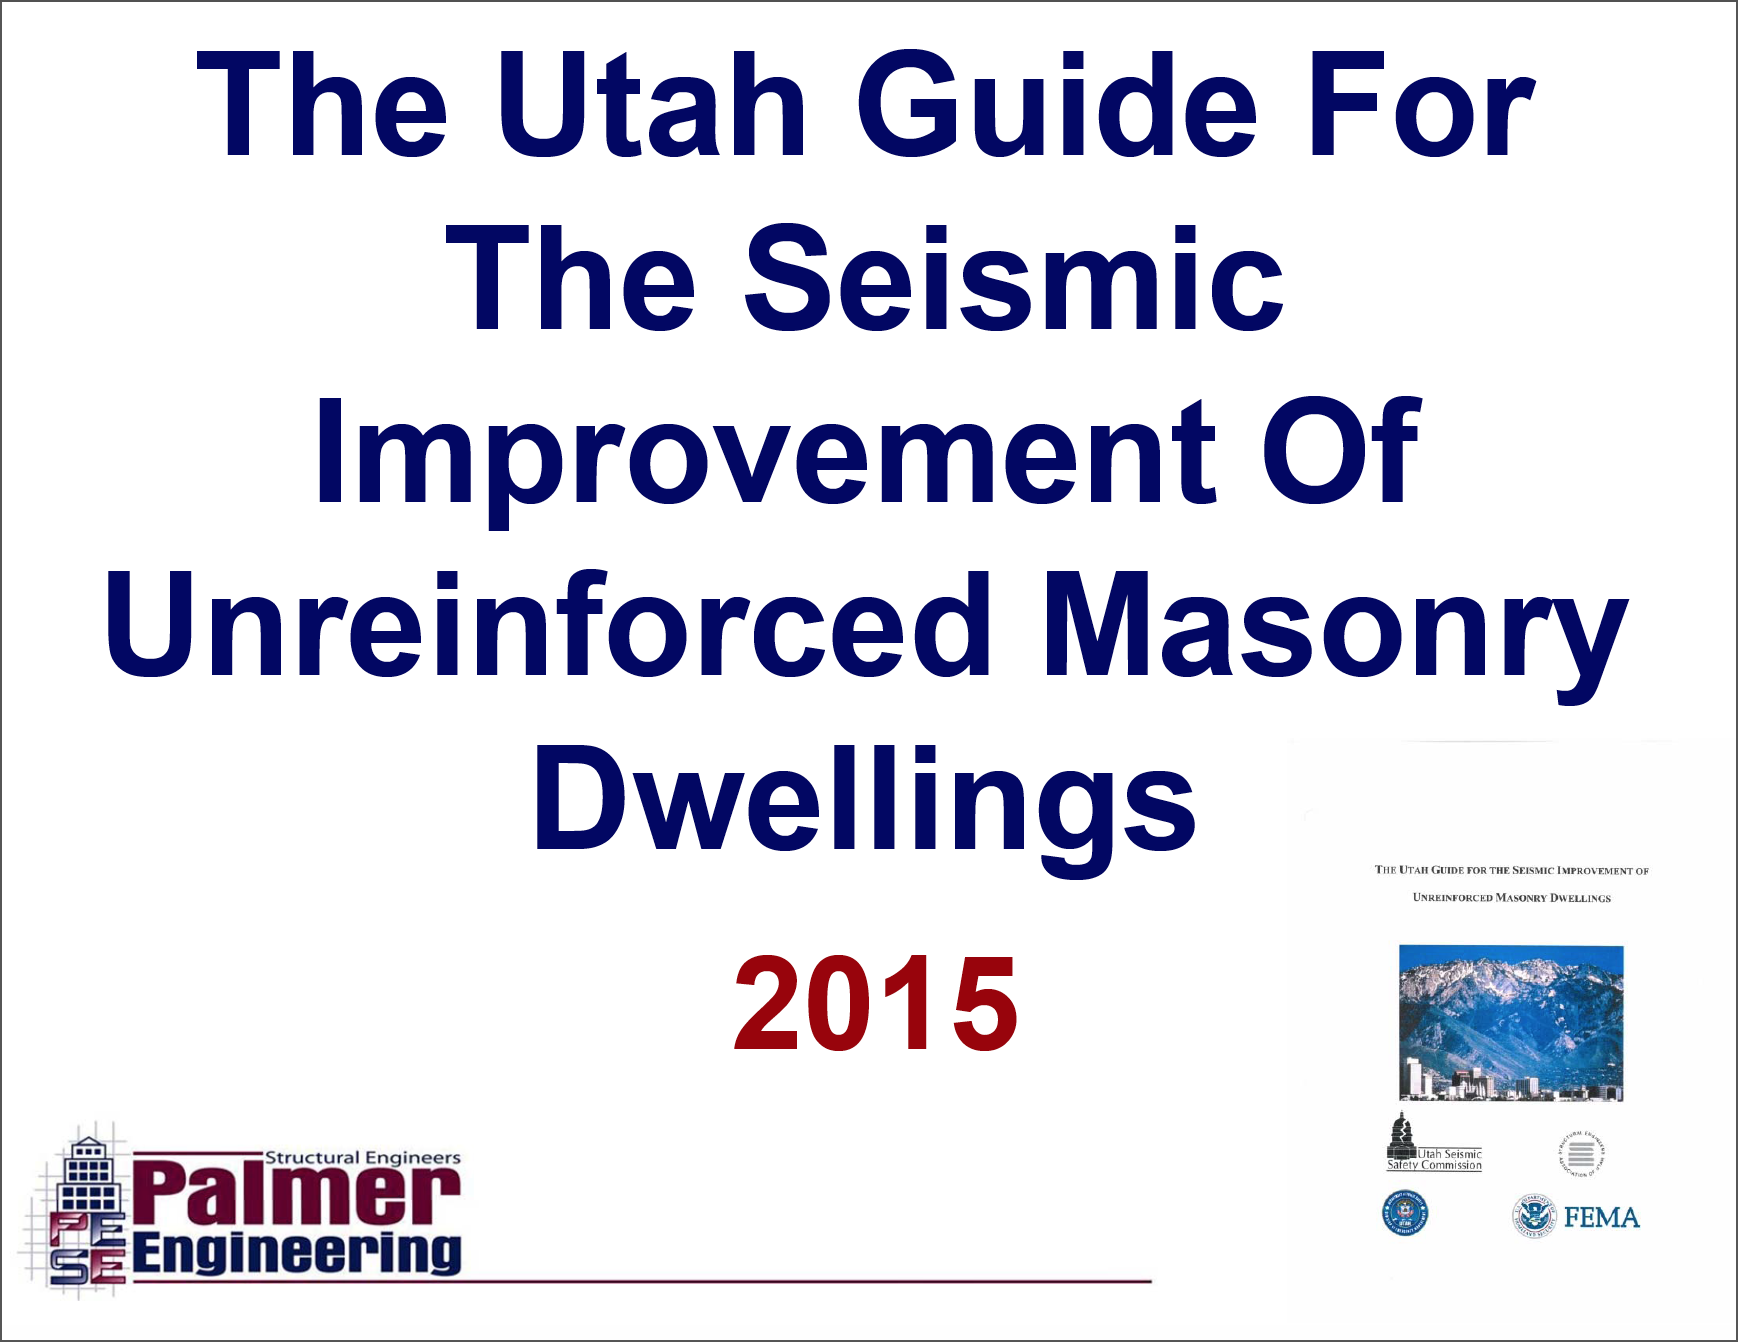 Utah Guide for the Seismic Improvement of Unreinforced Masonry Dwellings